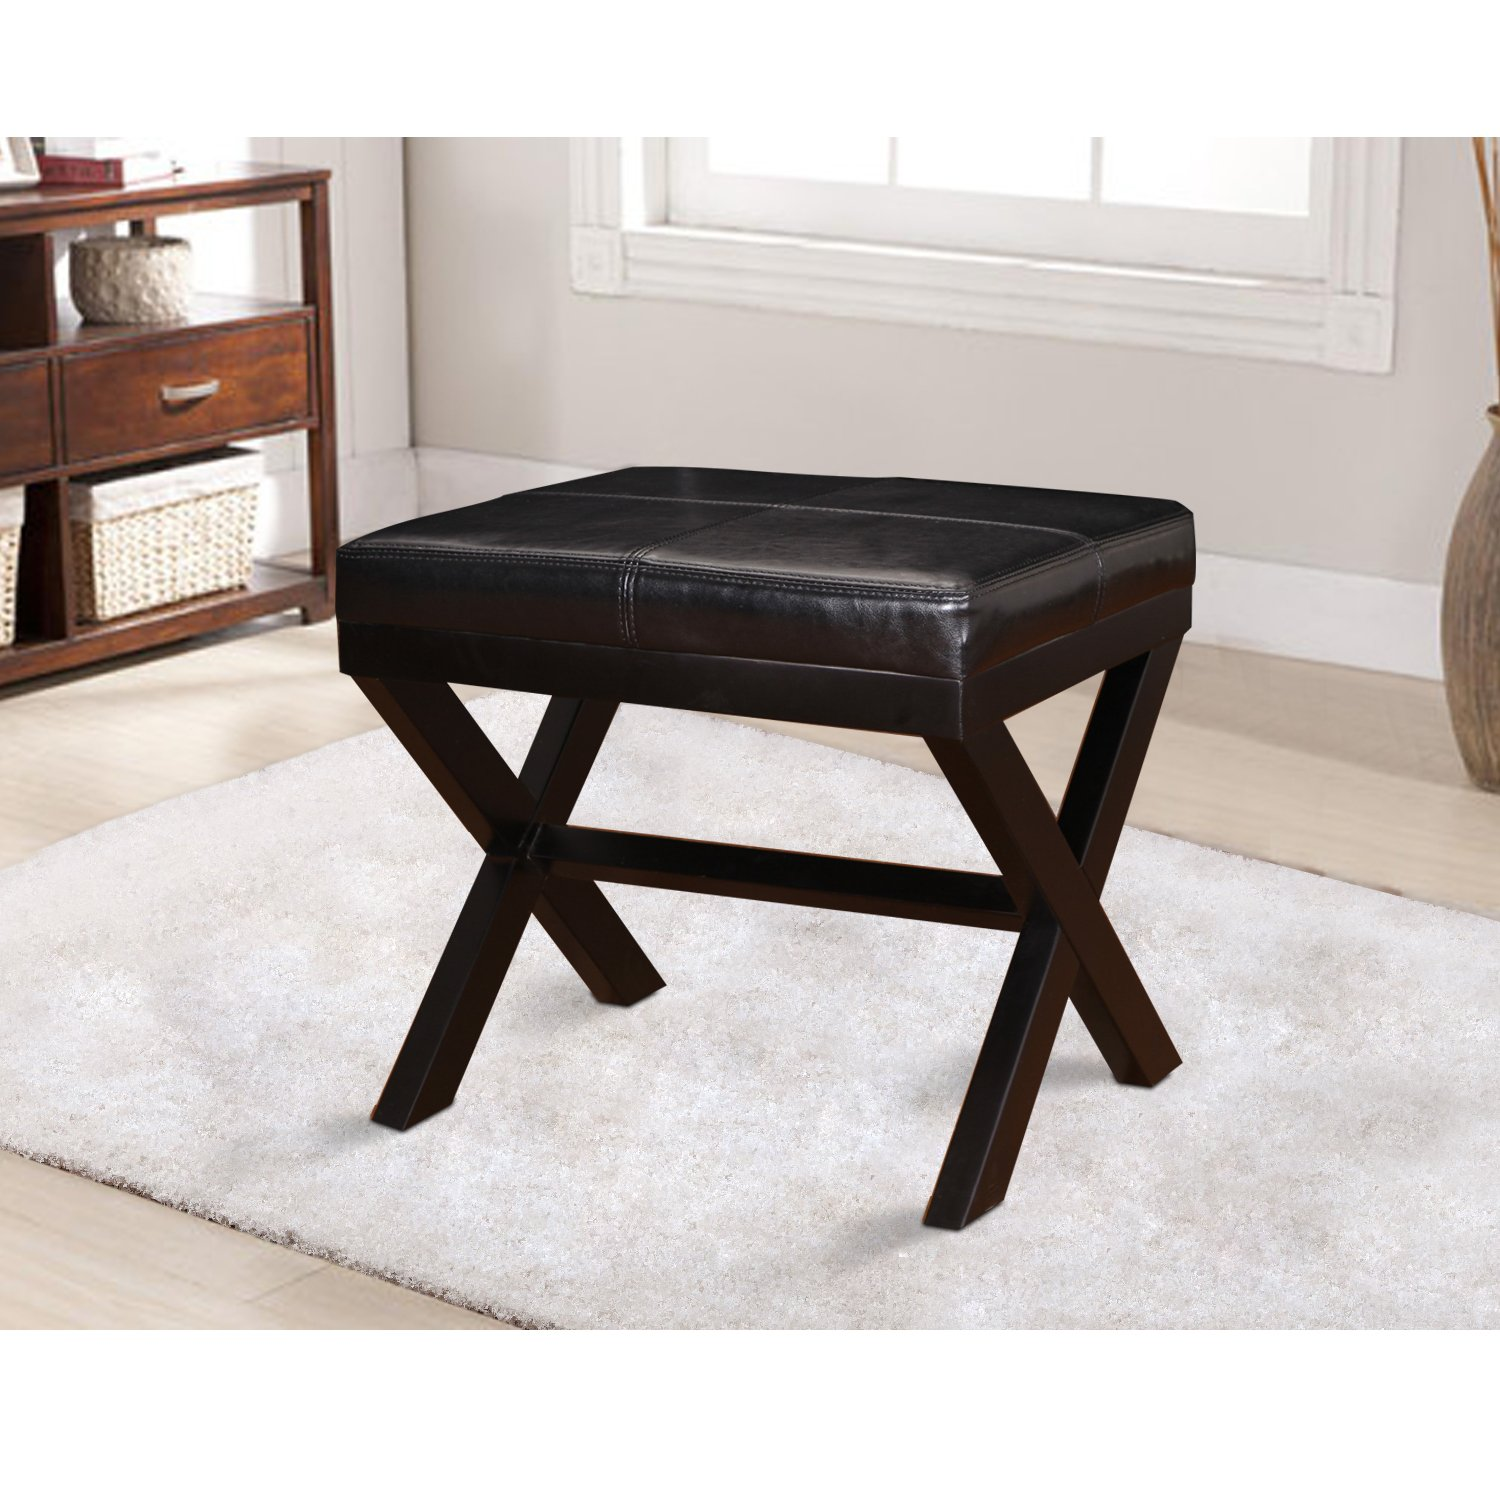 Adeco FT0010 Black Bonded Leather Contrast Stitch Ottoman x-Shaped Legs 19.25×16.5 Footstool Bench, 19-1 4 L 16-1 2 W 17-1 2 H,